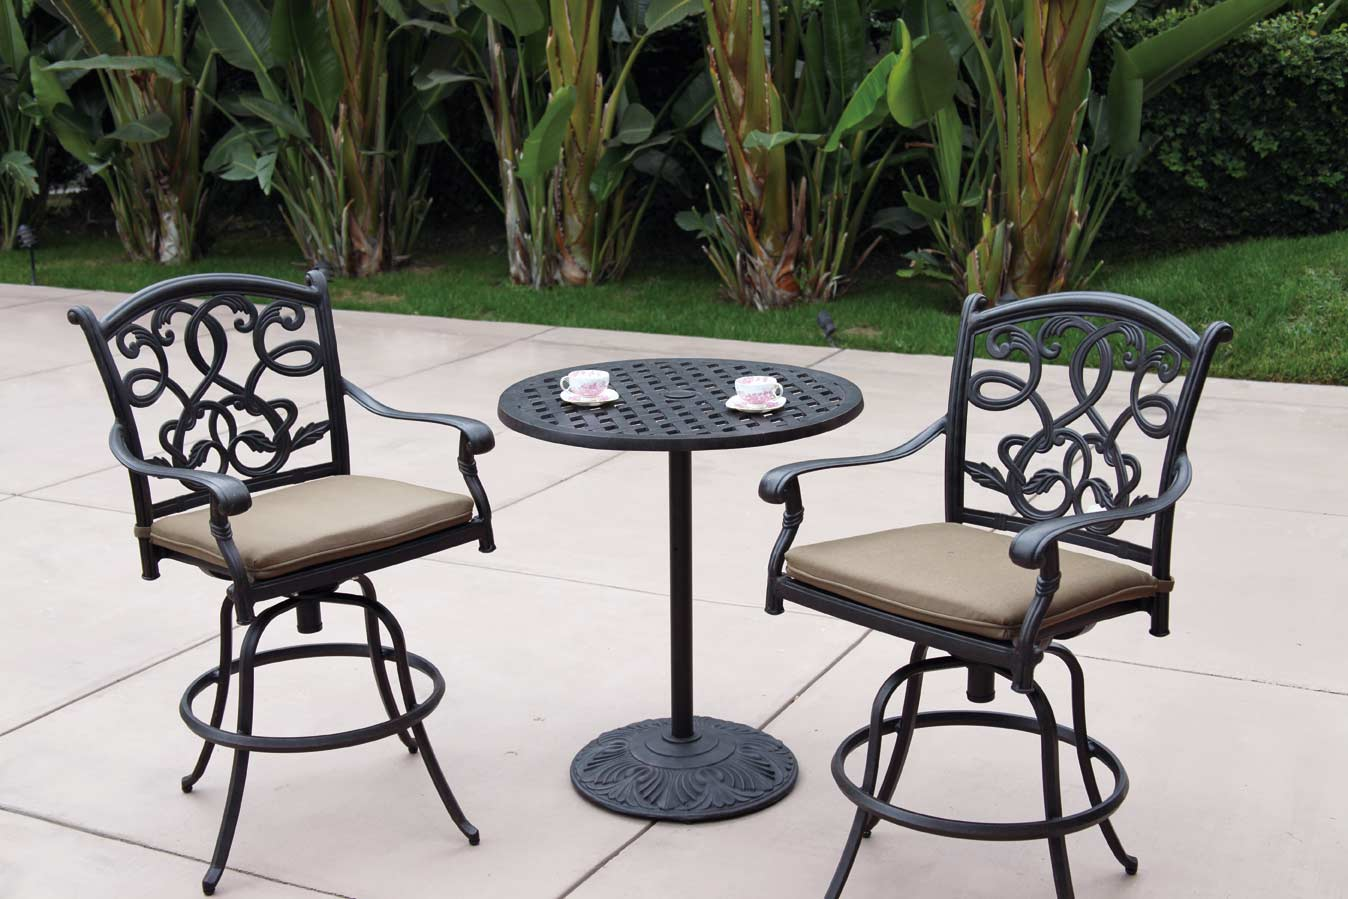 patio furniture bistro set cast aluminum 30 round pedestal pub table 3pc santa monica. Black Bedroom Furniture Sets. Home Design Ideas